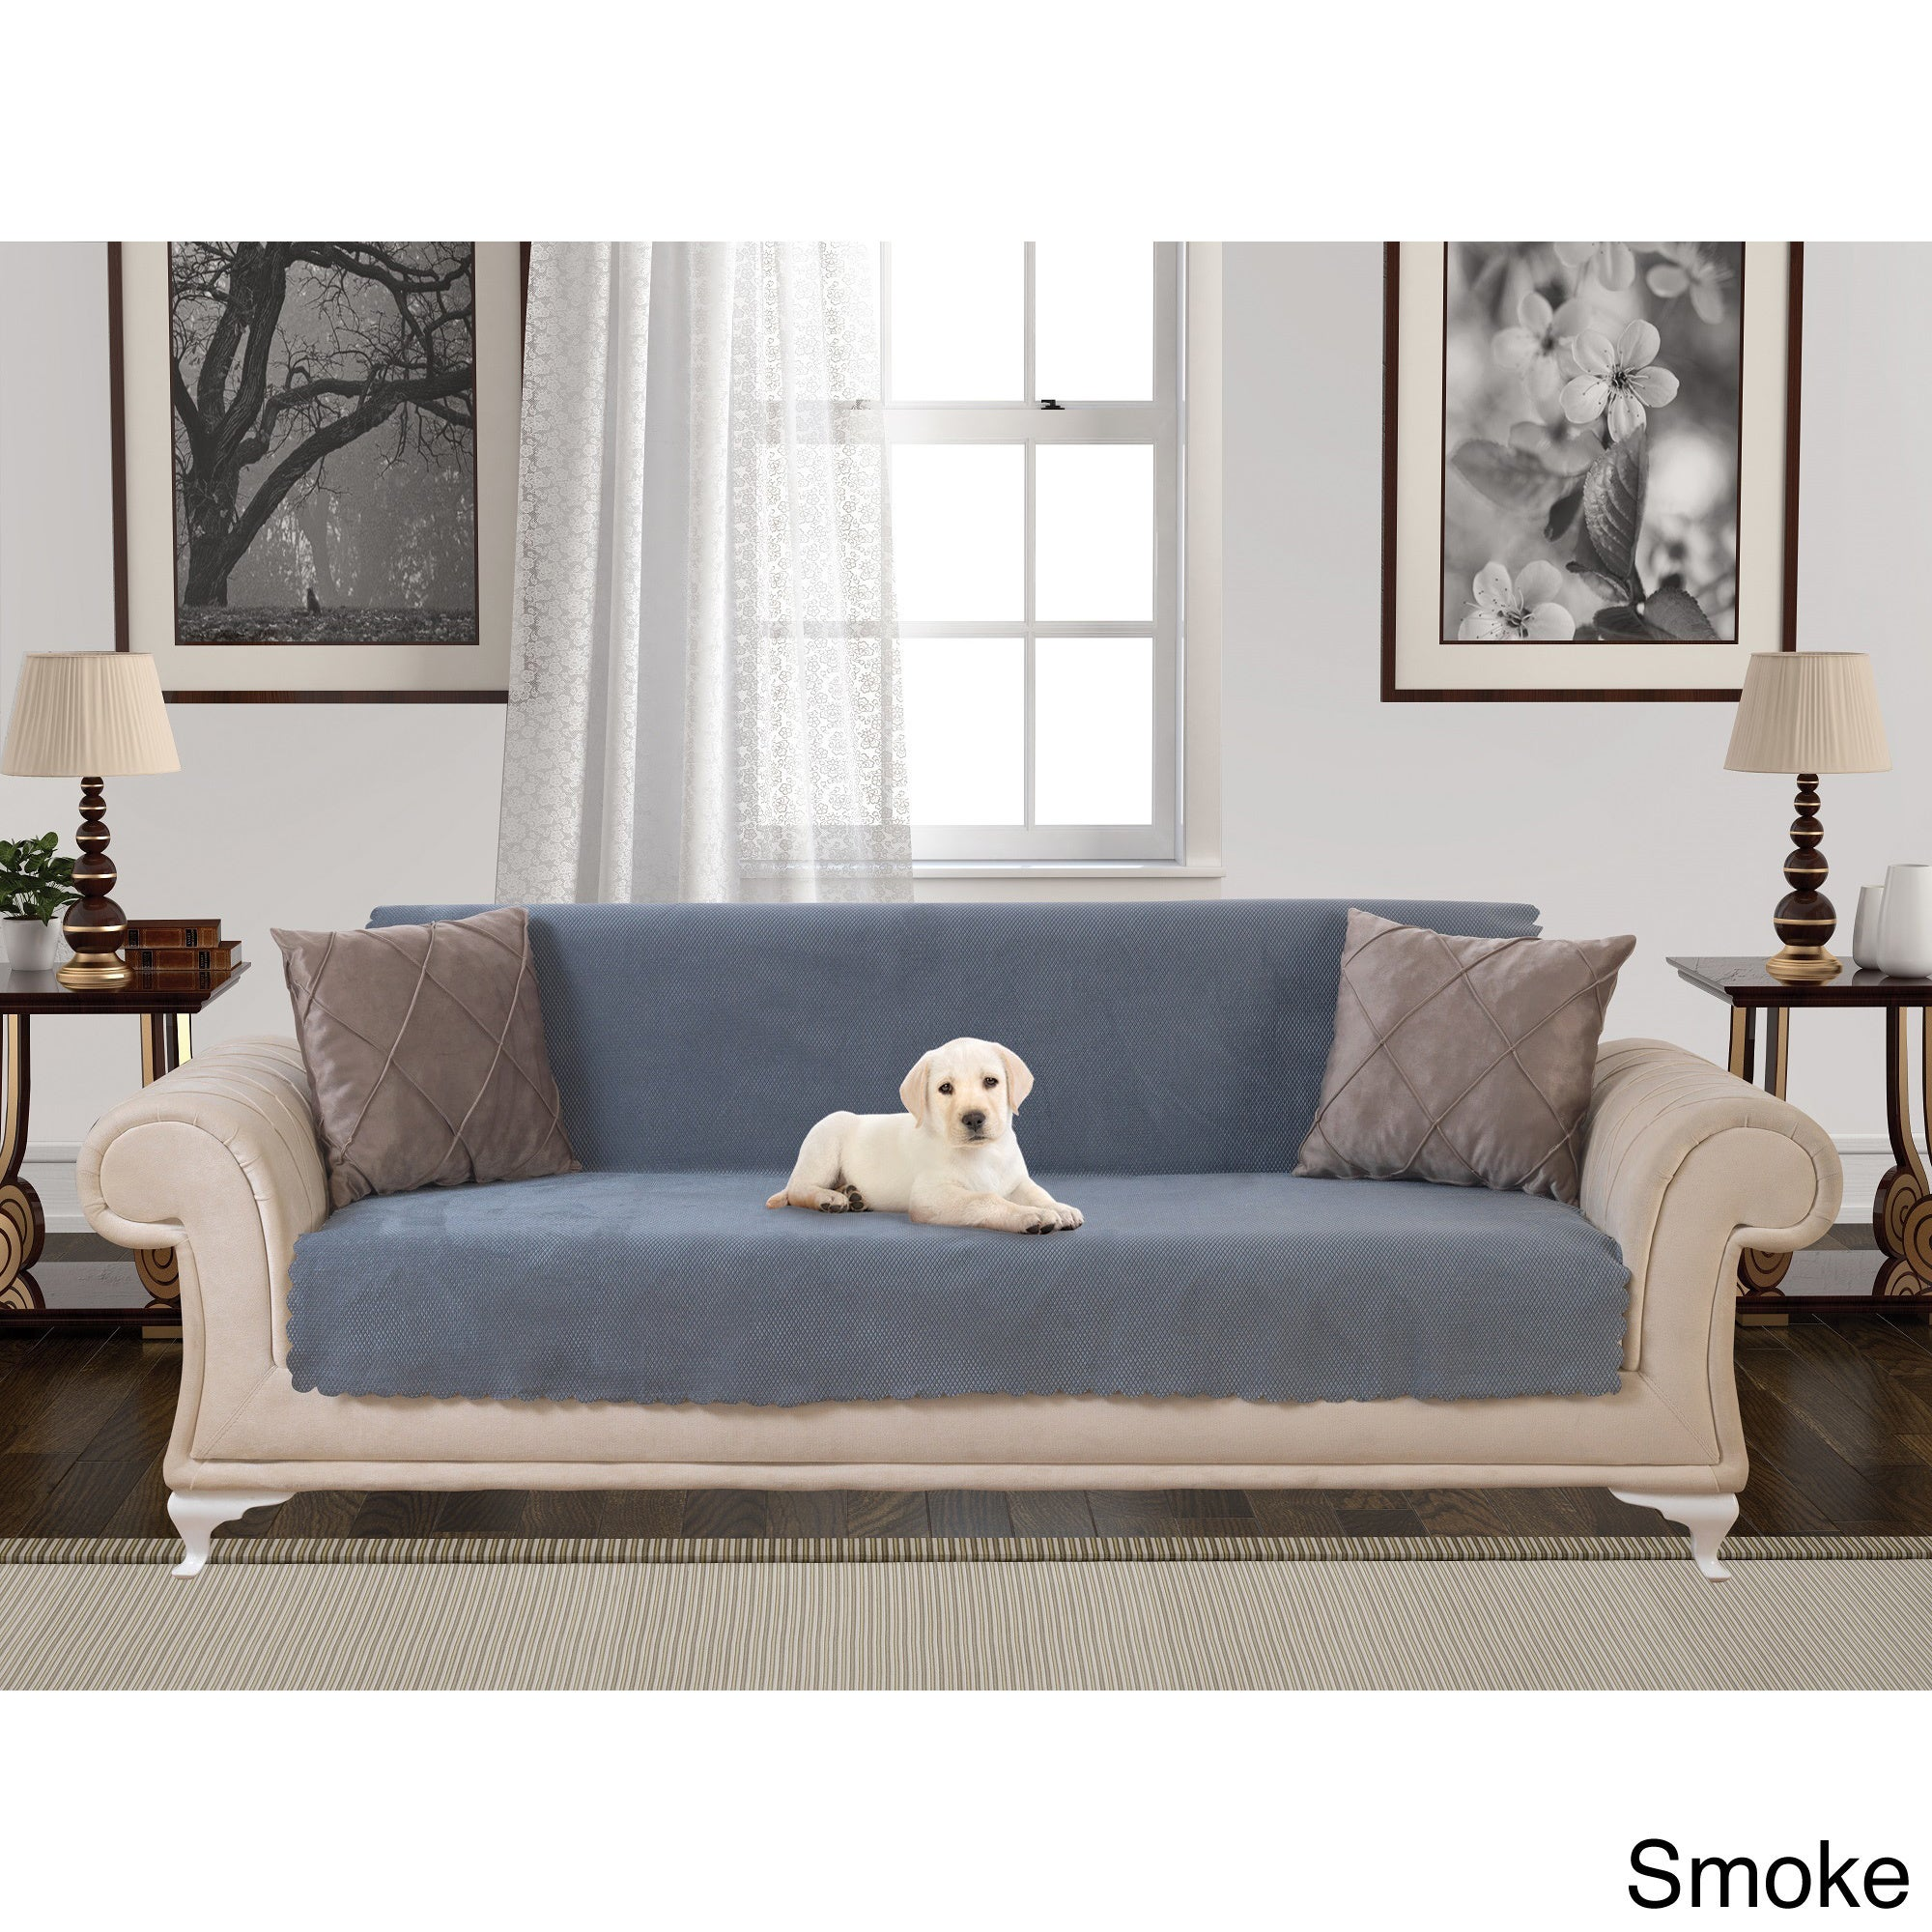 ebay walmart photo faux slipcover sofa slipcovers amazon concept stunning leather suede reclining cover full couch covers for large size com coverssofa pet armless of